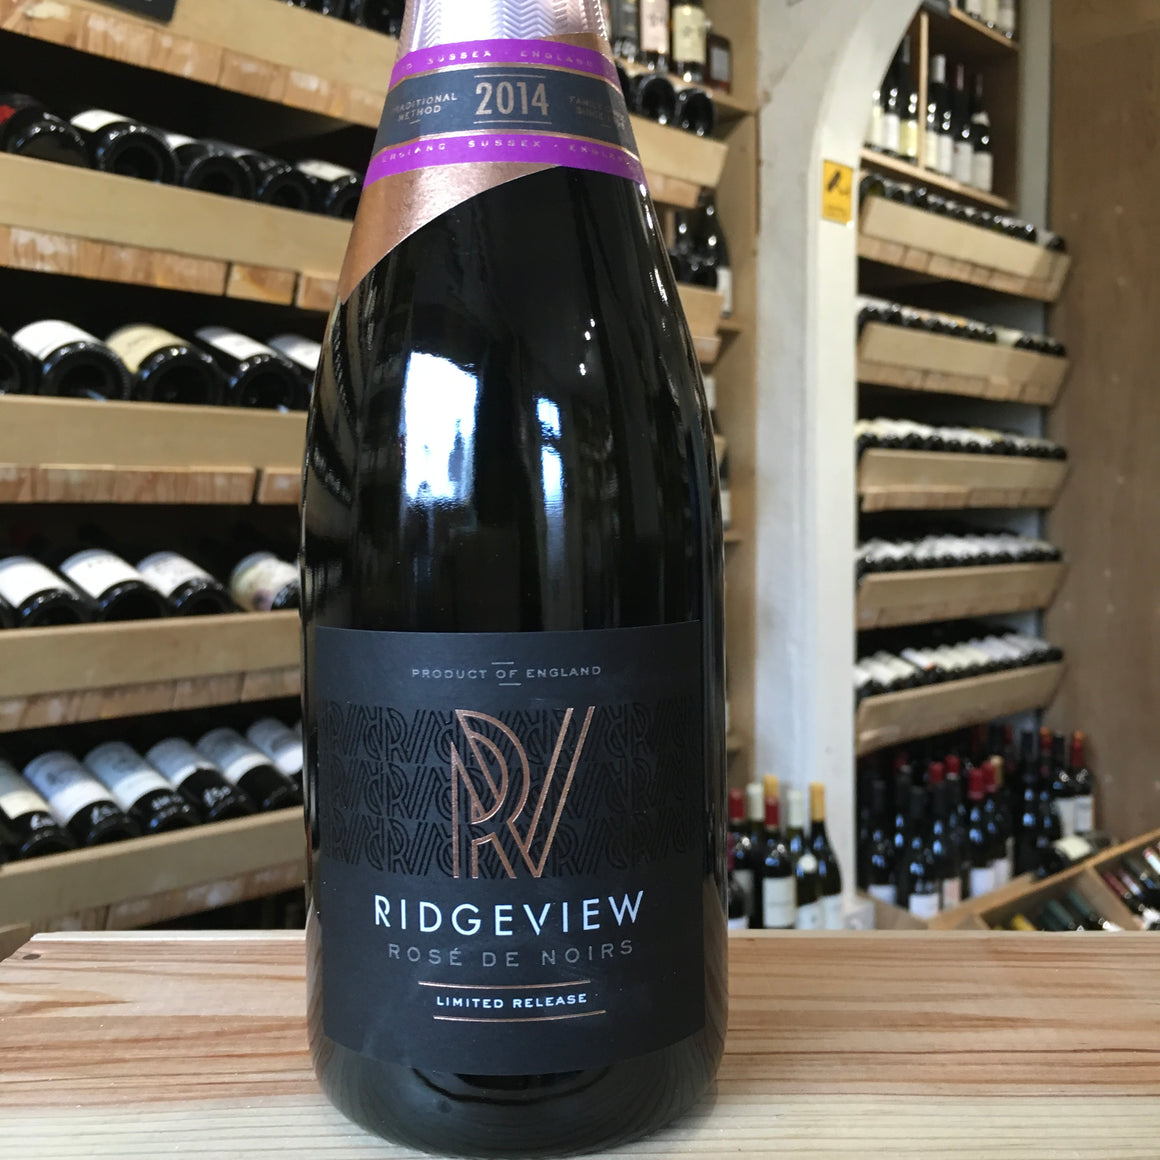 Ridgeview Rose de Noirs 2014 - Butlers Wine Cellar Brighton